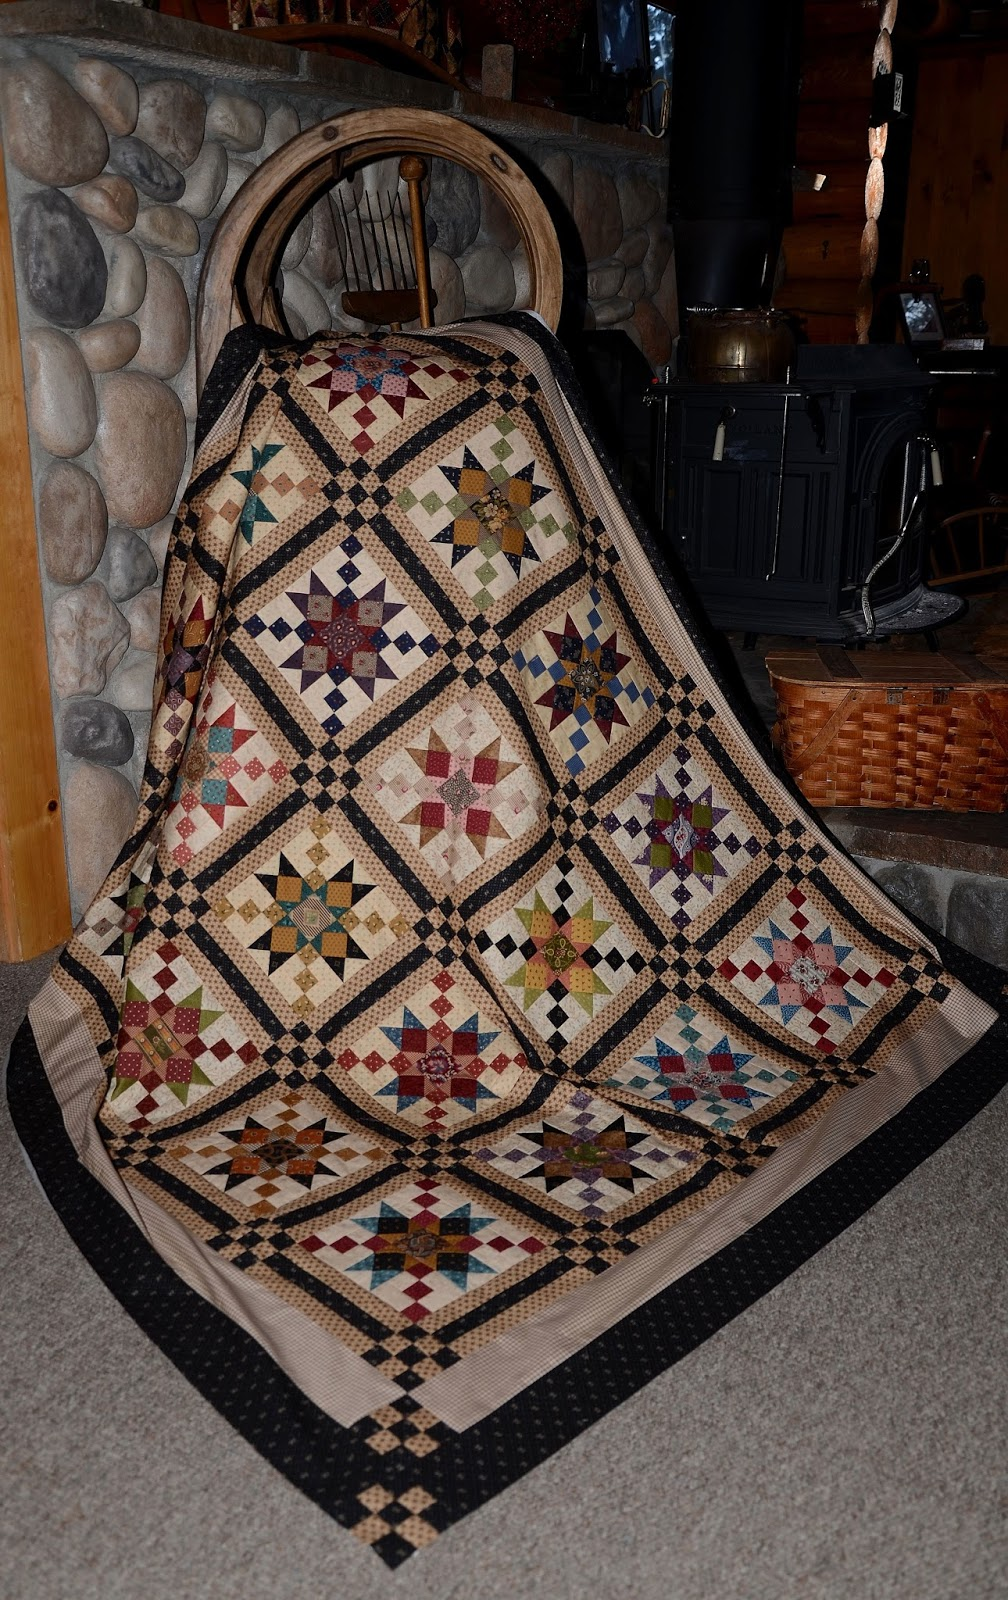 The Charmer Pages Lisa Kudrow For More: Sew'n Wild Oaks Quilting Blog: Country Charmer Check-In